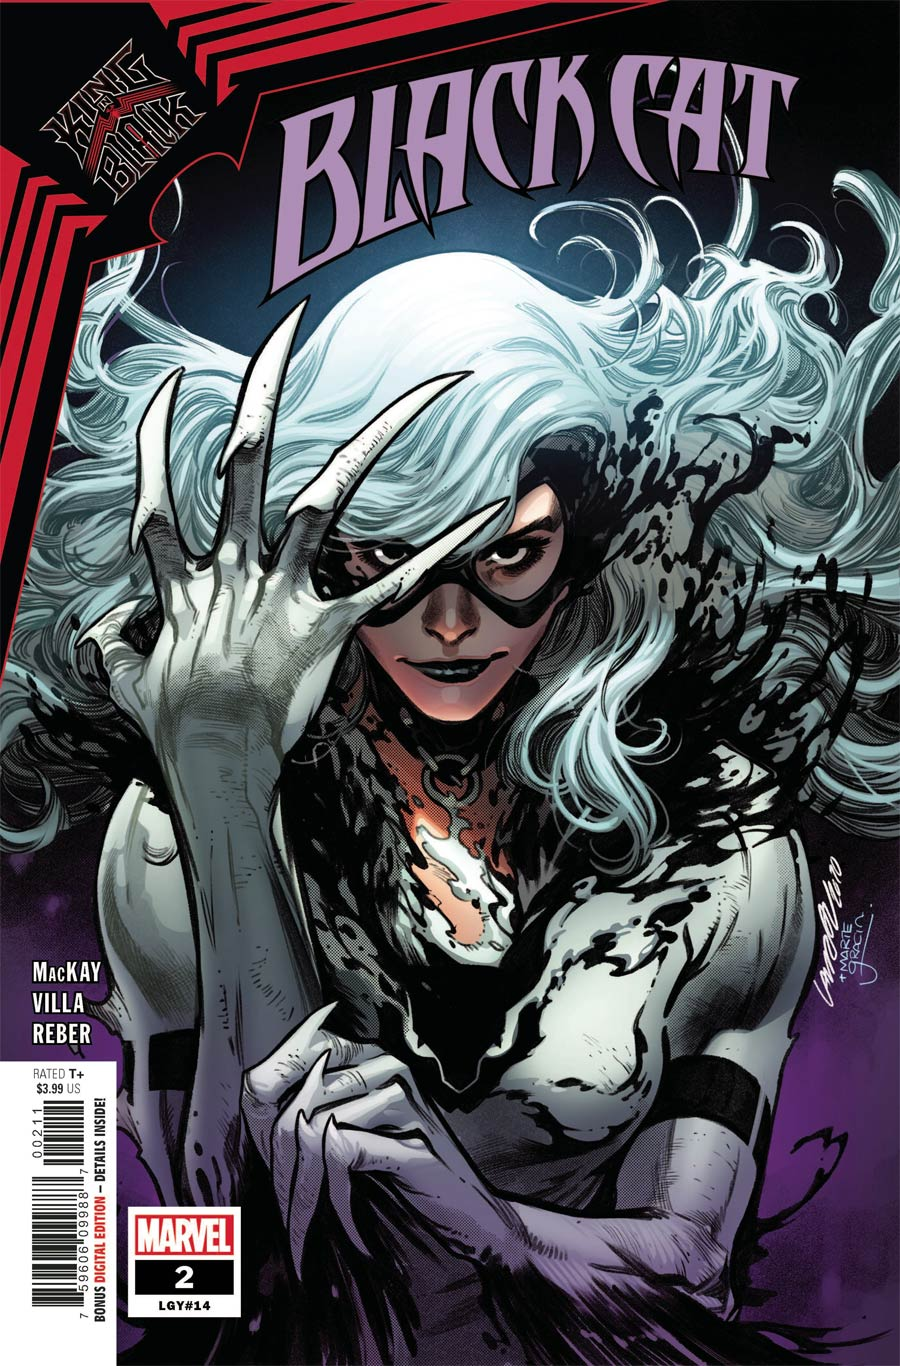 Black Cat Vol 2 #2 Cover A Regular Pepe Larraz Cover (King In Black Tie-In)